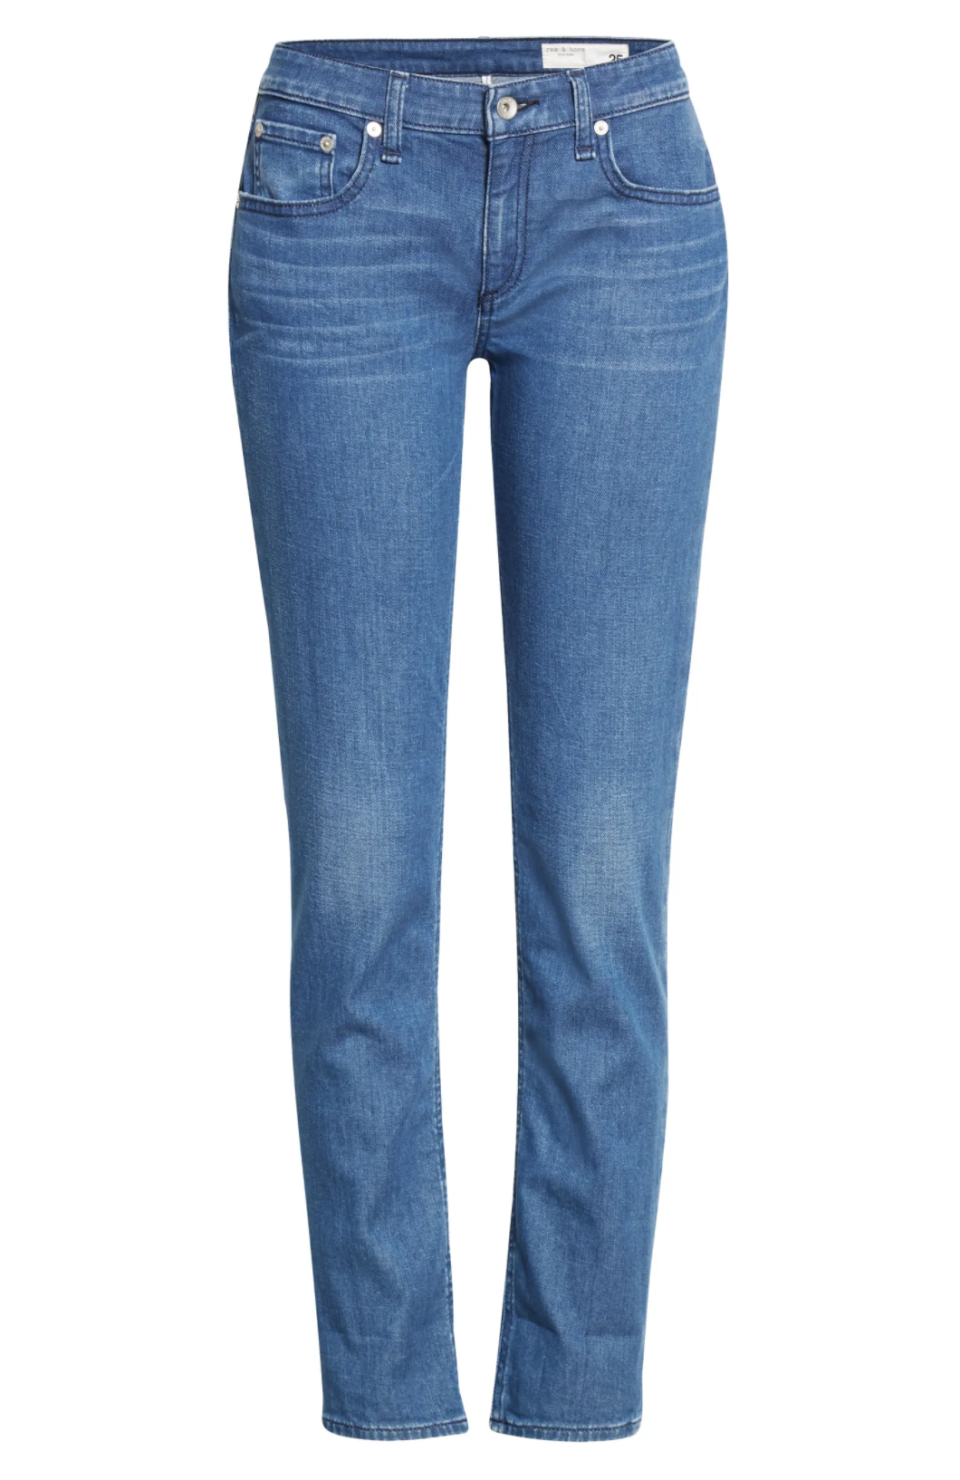 """<p><strong>Rag & Bone</strong></p><p>nordstrom.com</p><p><a href=""""https://go.redirectingat.com?id=74968X1596630&url=https%3A%2F%2Fwww.nordstrom.com%2Fs%2Frag-bone-dre-low-rise-slim-boyfriend-jeans-calimet%2F5913449&sref=https%3A%2F%2Fwww.harpersbazaar.com%2Ffashion%2Ftrends%2Fg37107648%2Fnordstrom-anniversary-sale-jeans%2F"""" rel=""""nofollow noopener"""" target=""""_blank"""" data-ylk=""""slk:Shop Now"""" class=""""link rapid-noclick-resp"""">Shop Now</a></p><p><strong><del>$195</del> 129.90</strong></p><p>The Nordstrom Anniversary Sale is stocked with Rag & Bone's luxury, laid back denim. Of all the pairs to choose from, this relaxed boyfriend jean is our top pick. Roll up the cuffs and throw on a t-shirt for an easy weekend outfit—or just a Saturday state of mind.</p>"""